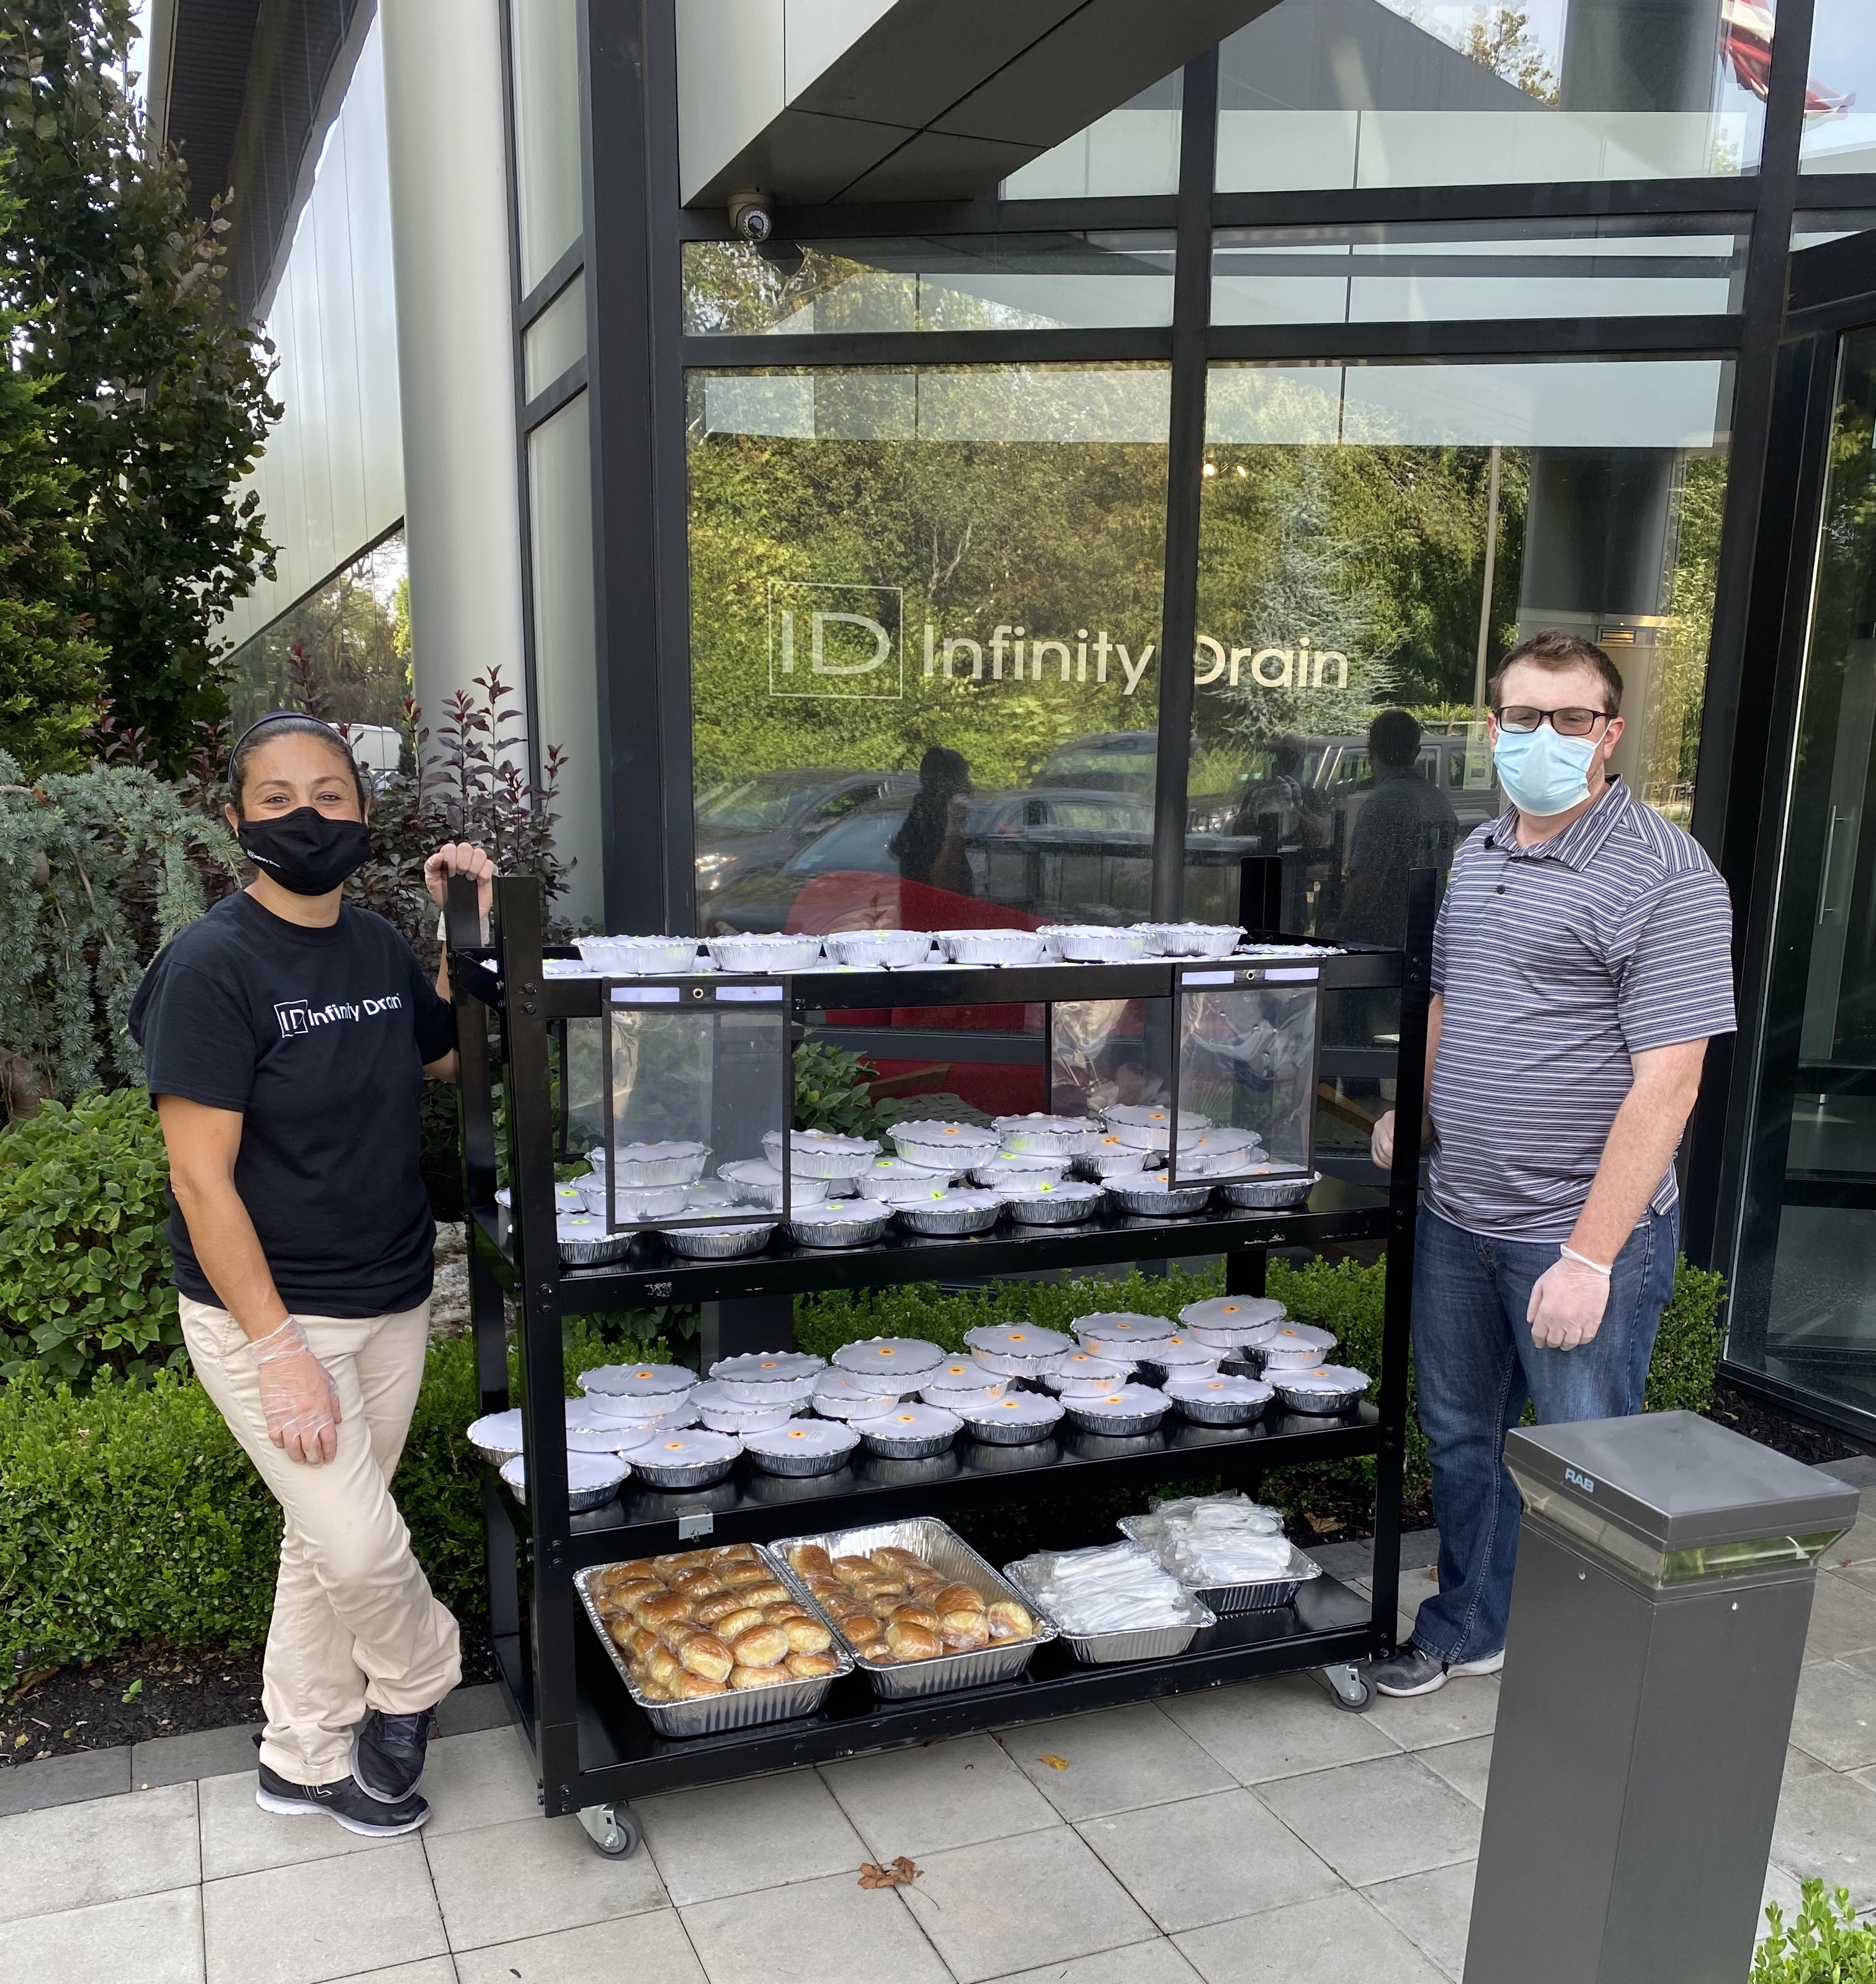 S:US Partners with Infinity Drain to Provide Hot Meals for Long Island Community